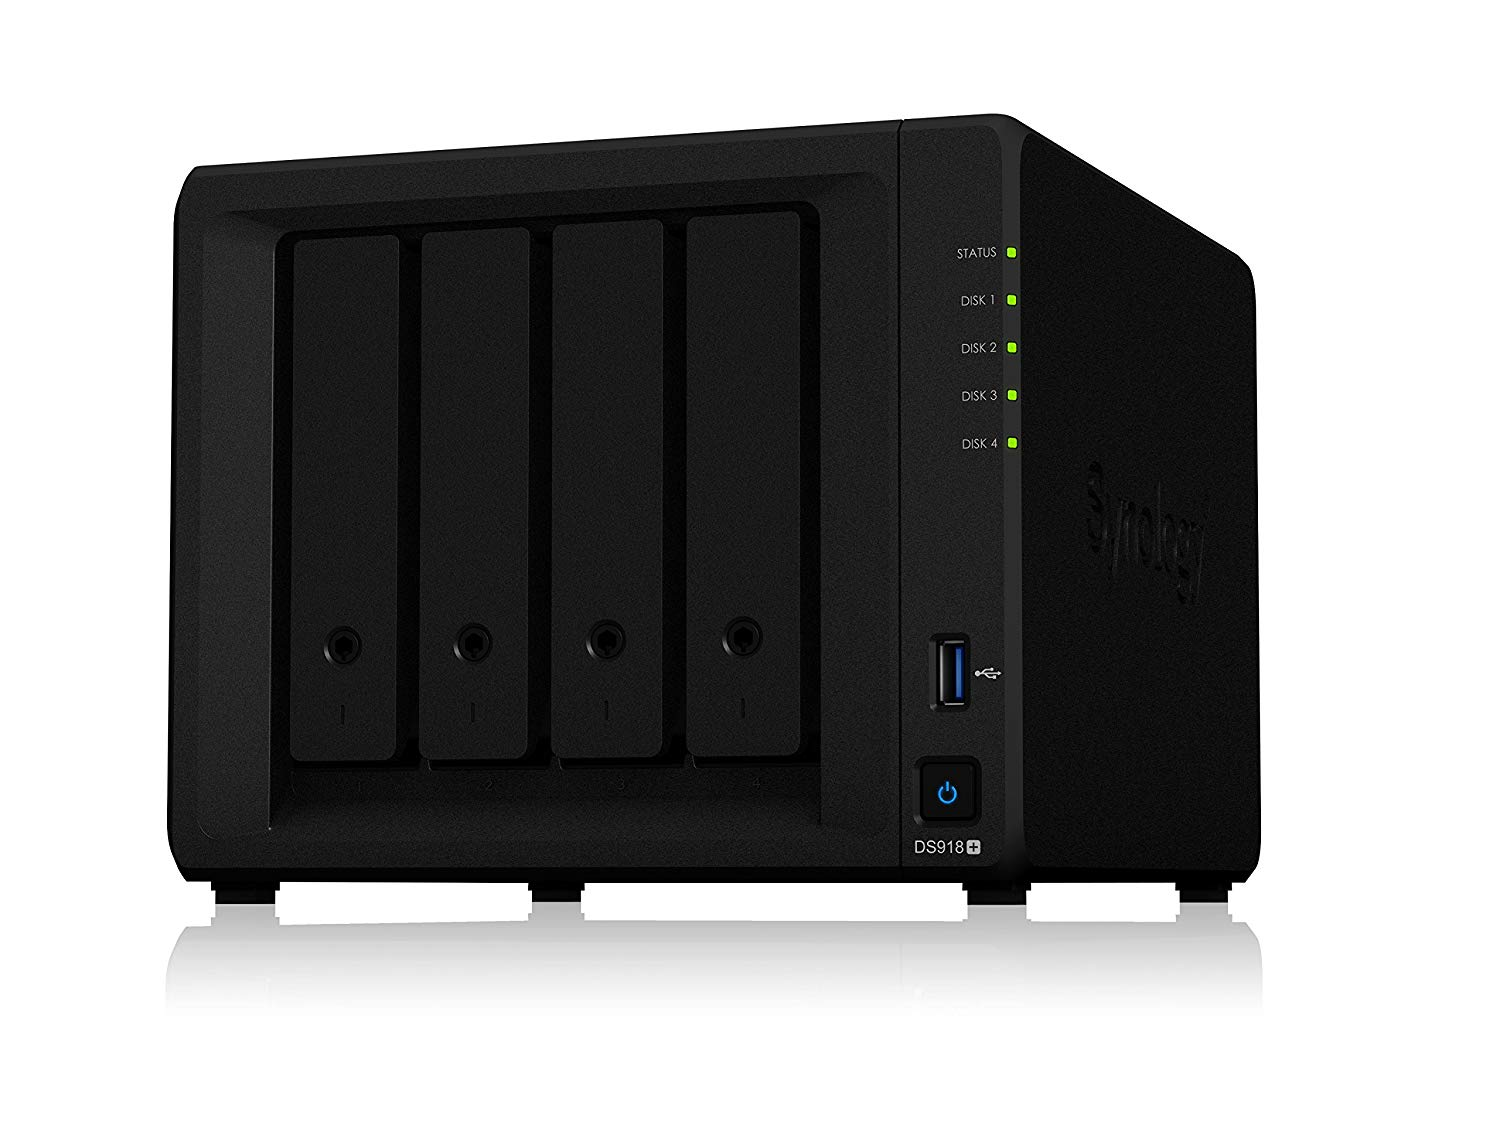 Synology, Ultima, Bundle, -, DS918+, x, 1, Network, Attached, Storage, +, Ironwolf, 6TB, HDDs, x, 4, +, Samsung, M.2, NVMe, 500GB, x, 2,